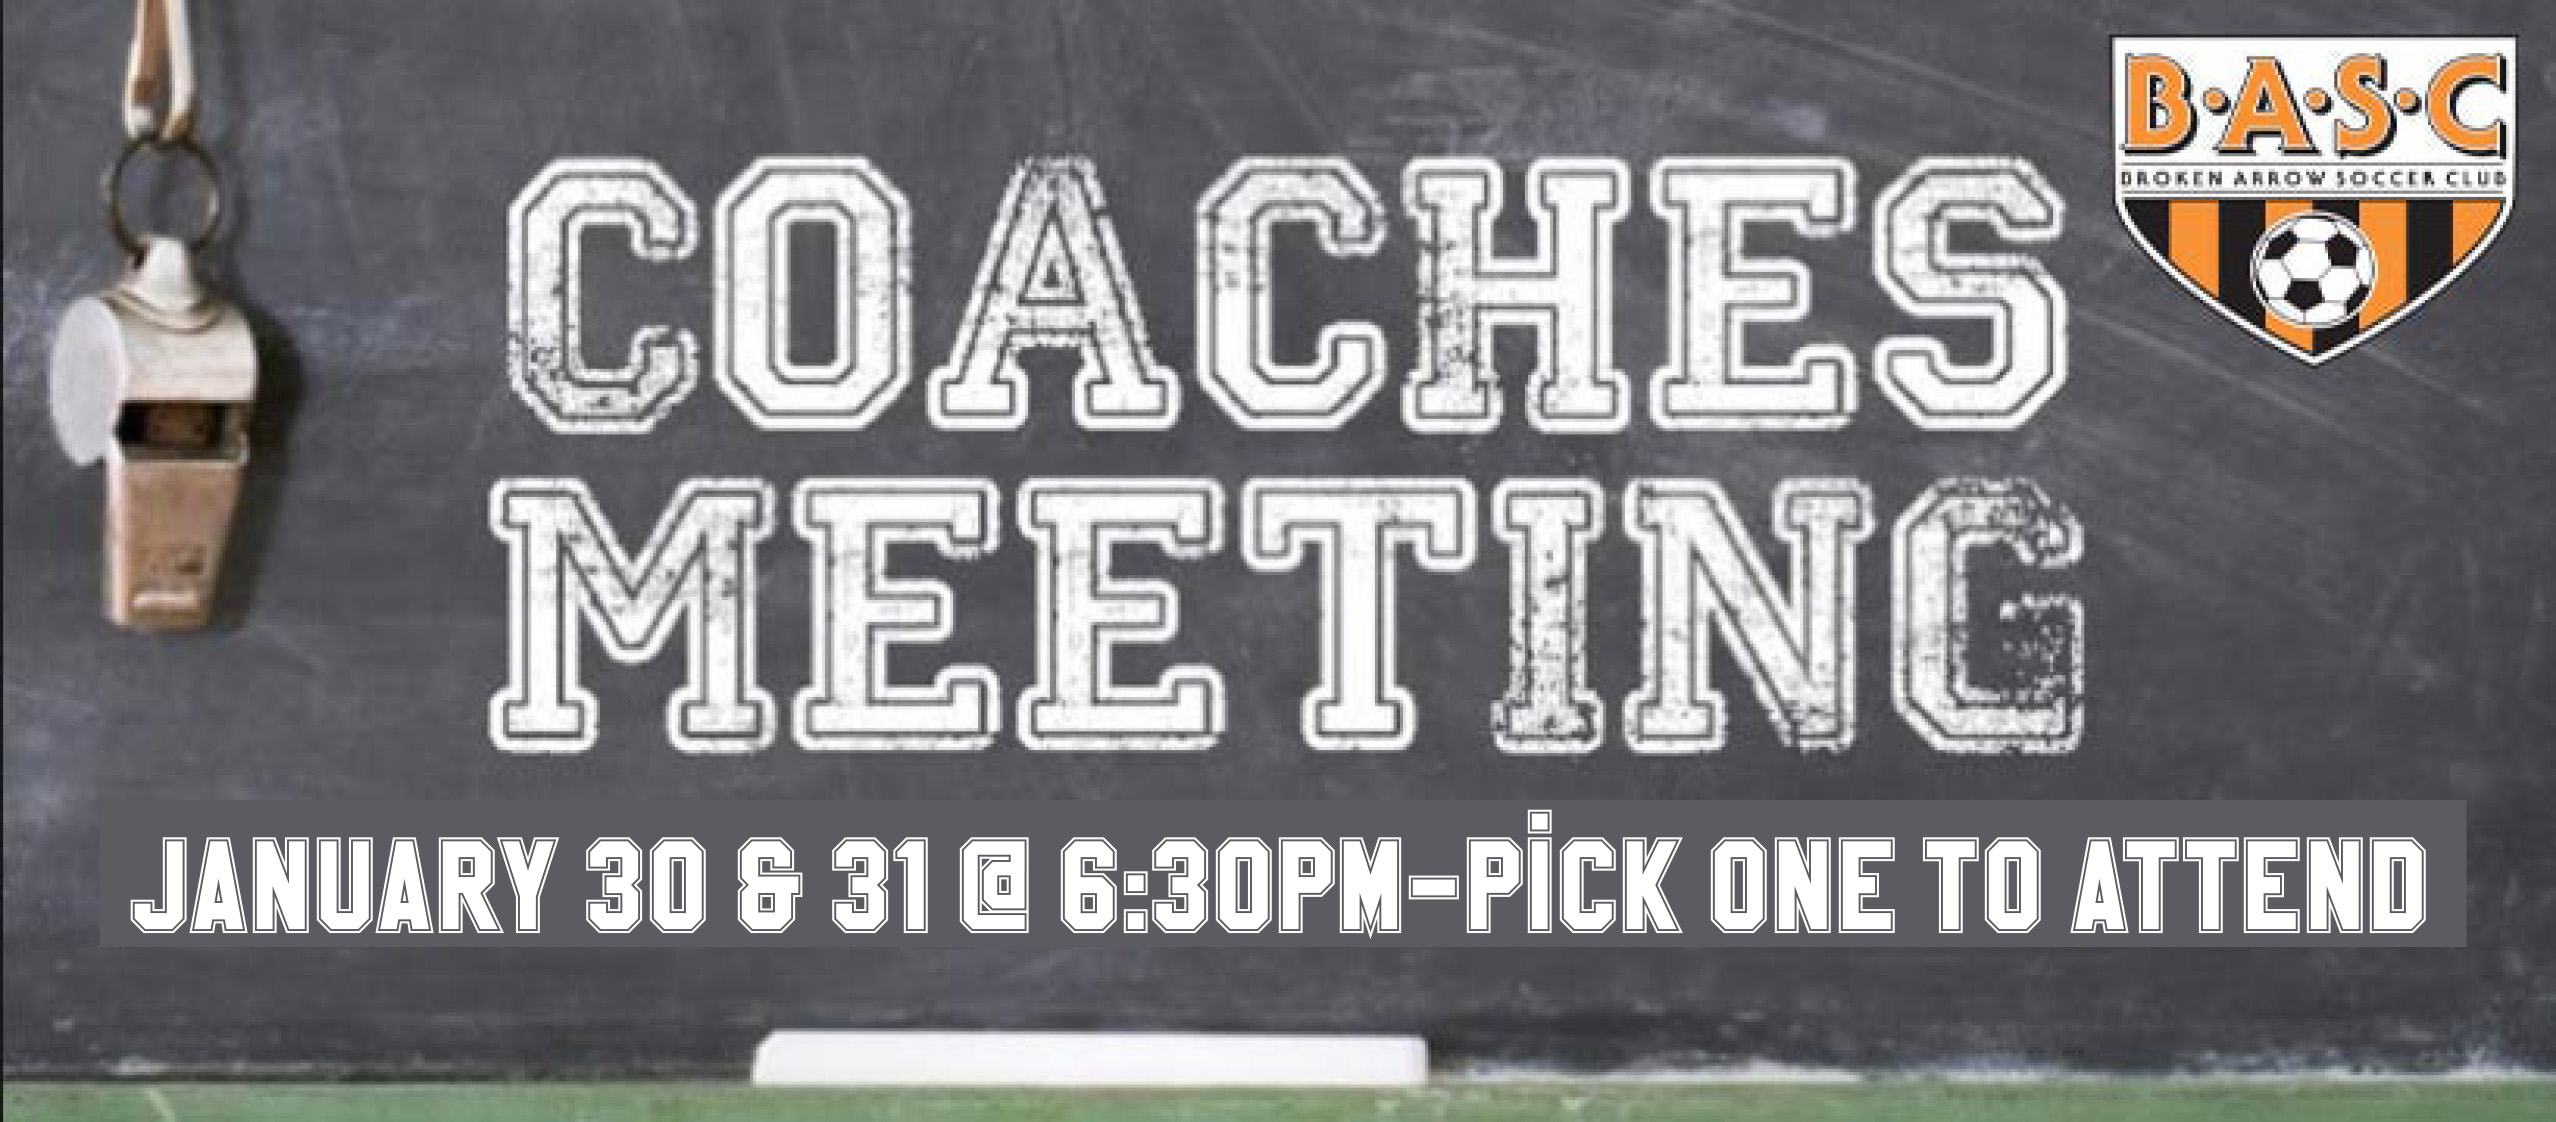 Mandatory Coach Meeting January 30th or 31st @ 6:30PM